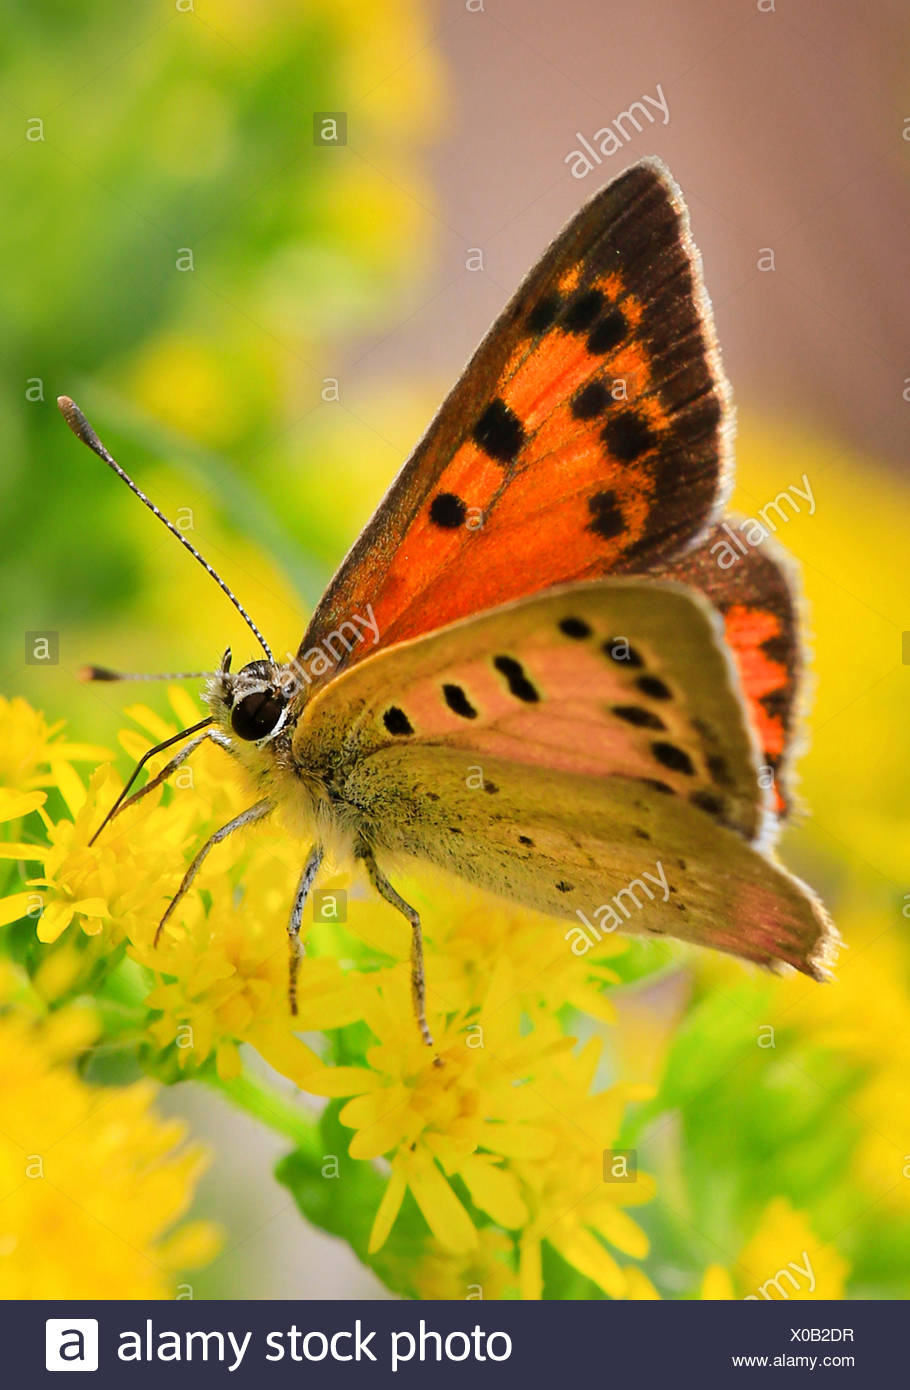 small copper (Lycaena phlaeas, Chrysophanus phlaeas), sucking nectar on yellow blossoms, Germany - Stock Image